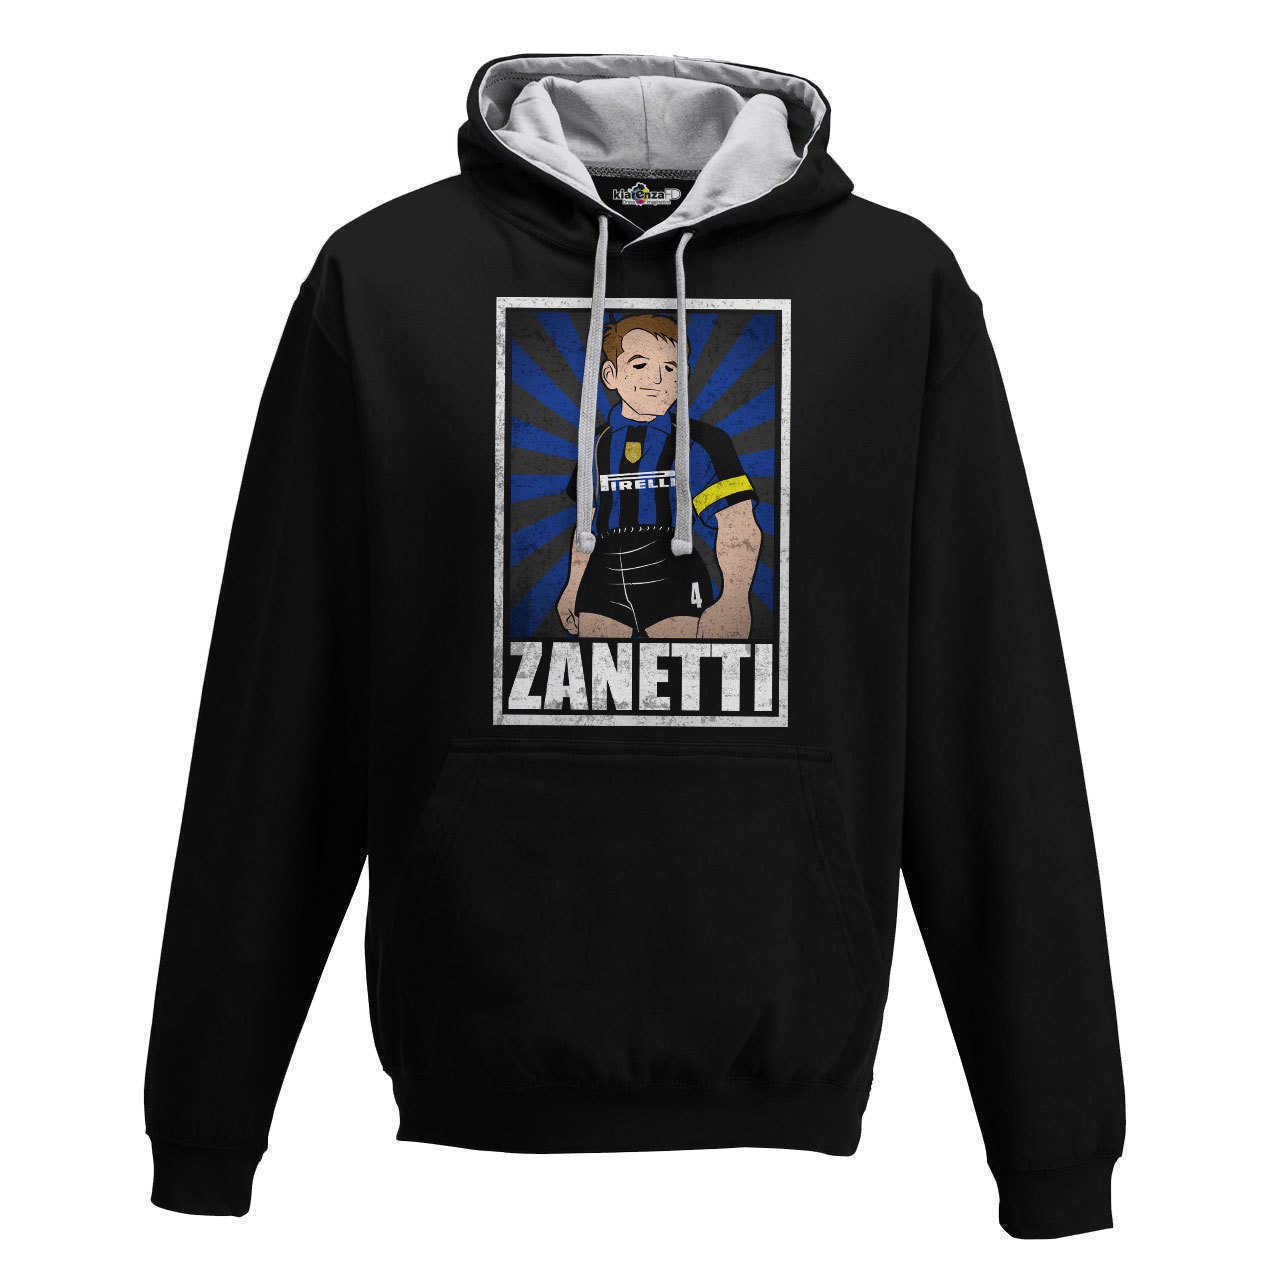 Hood Sweatshirt Bico Vintage Zanetti <font><b>Soccer</b></font> <font><b>Inter</b></font> <font><b>Milan</b></font> Legend Spoof Holly and Benji Grunge S image